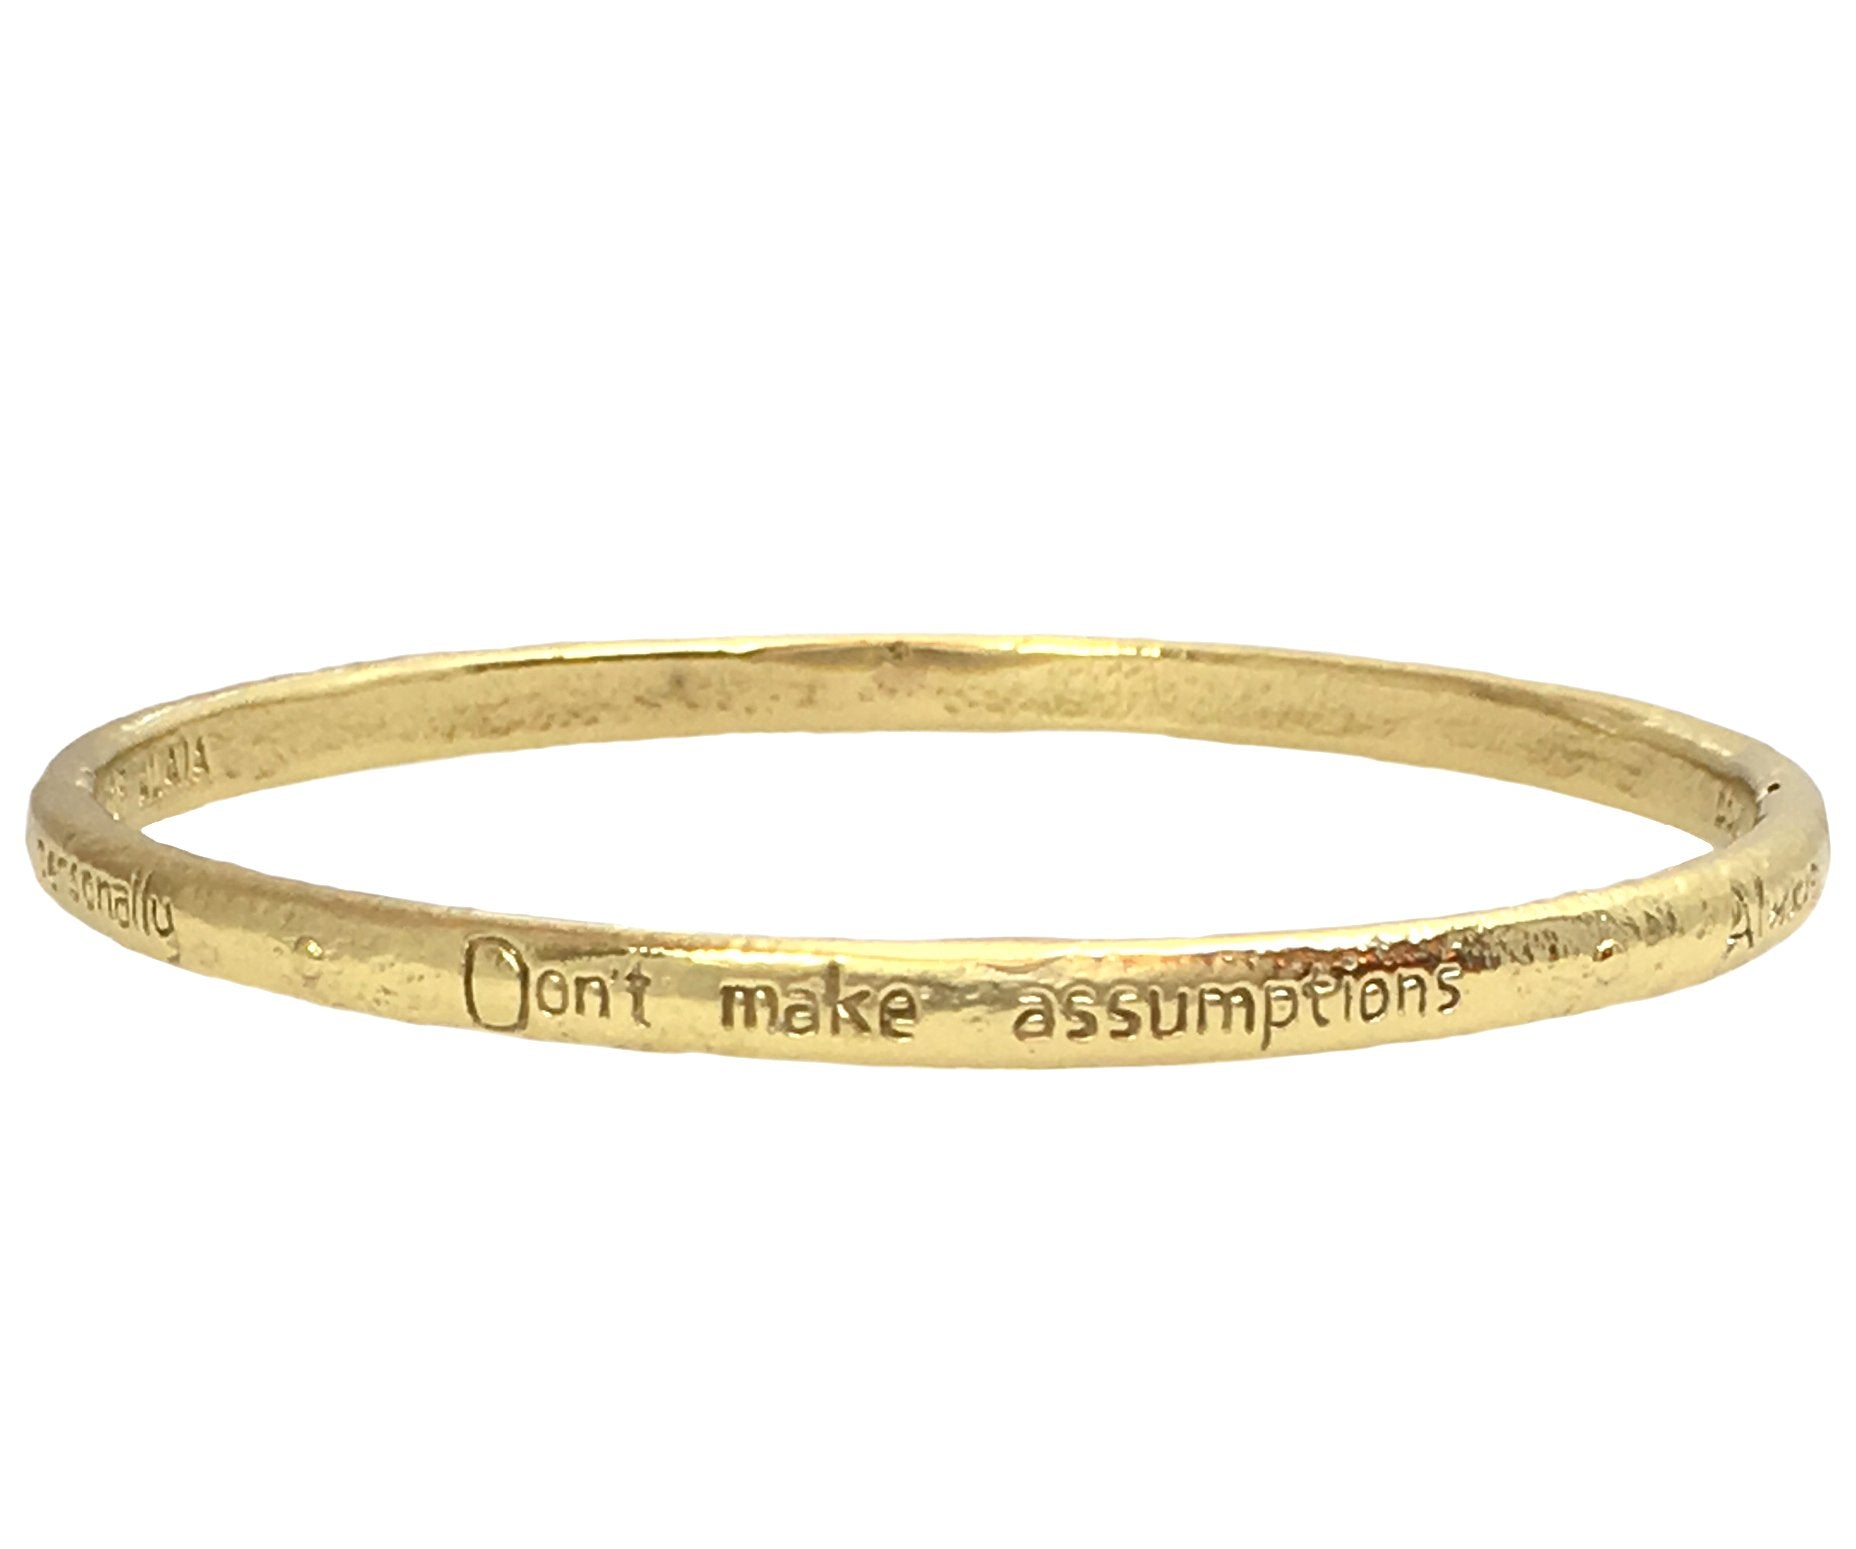 The Four Agreements Single Bangle in Brass | Handcrafted | Inspirational Jewelry | Jewelry Evolution8 | Made in Bali